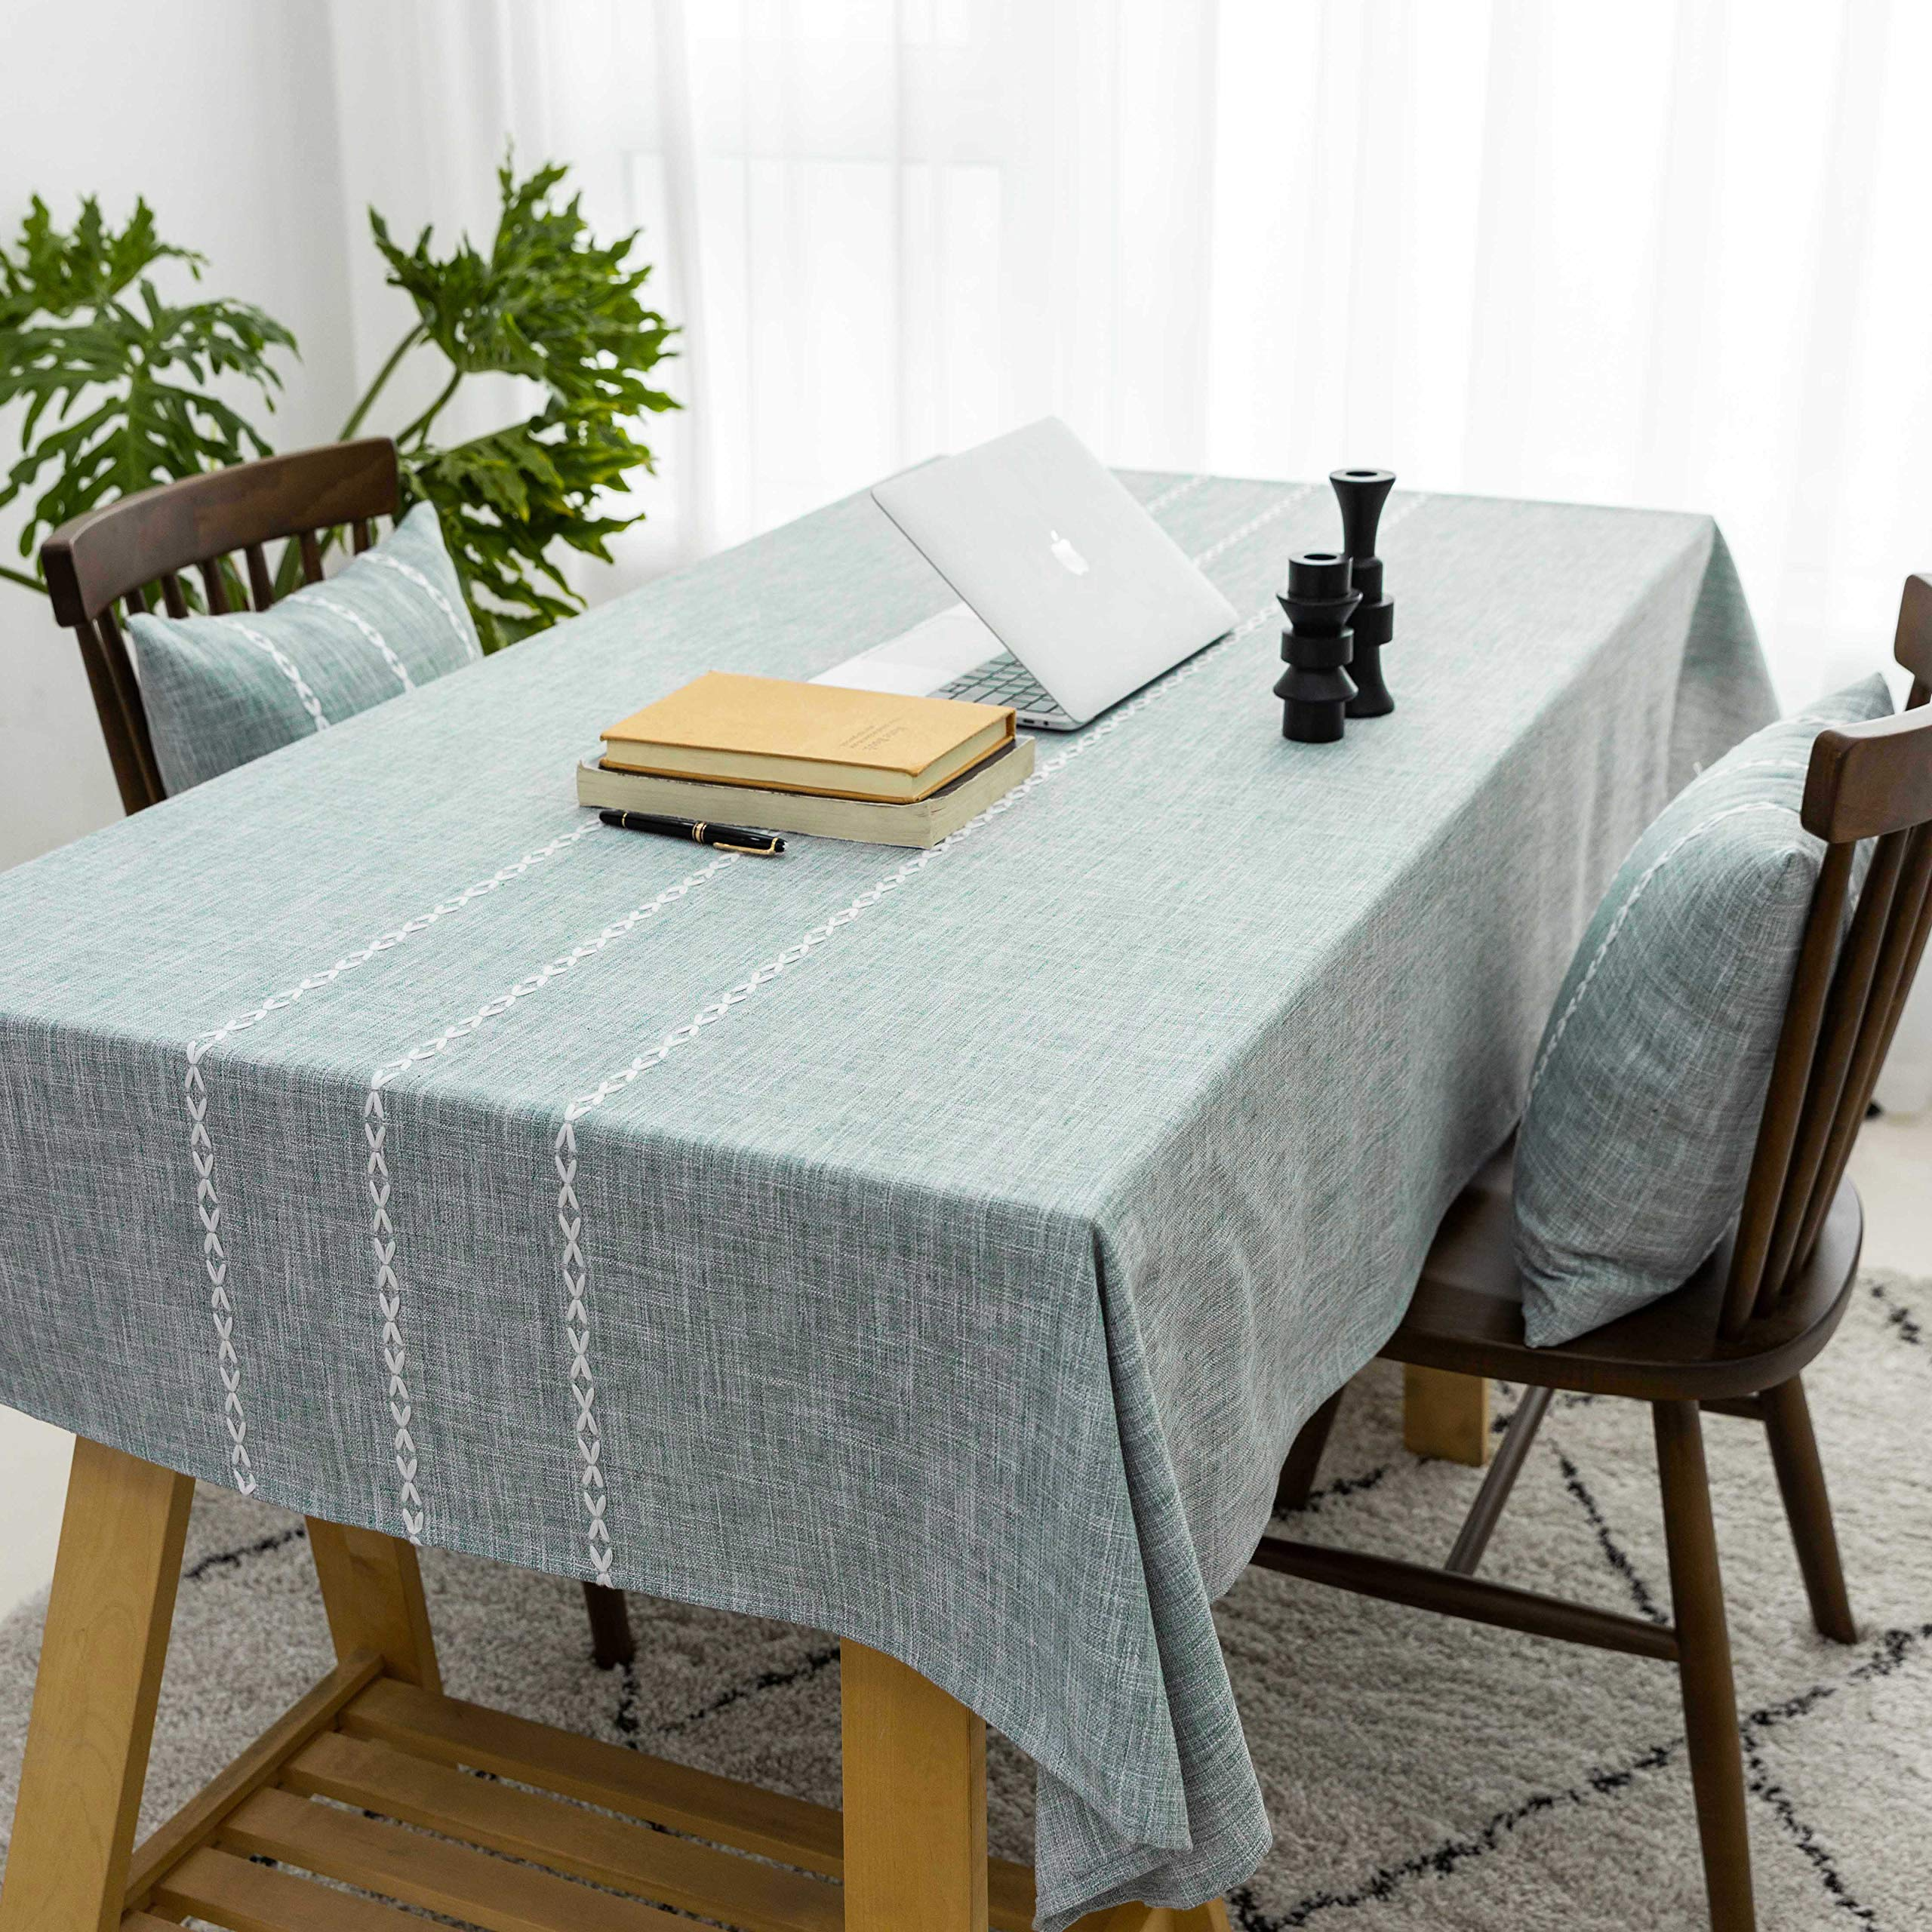 Indoor and Outdoor Dining Picnic Dark Blue Washable Table Cover with Dust-Proof Wrinkle Resistant for Restaurant 52 x 70 Inch Pastoral Rectangle Tablecloth Floral Linen Fabric Table Cloth